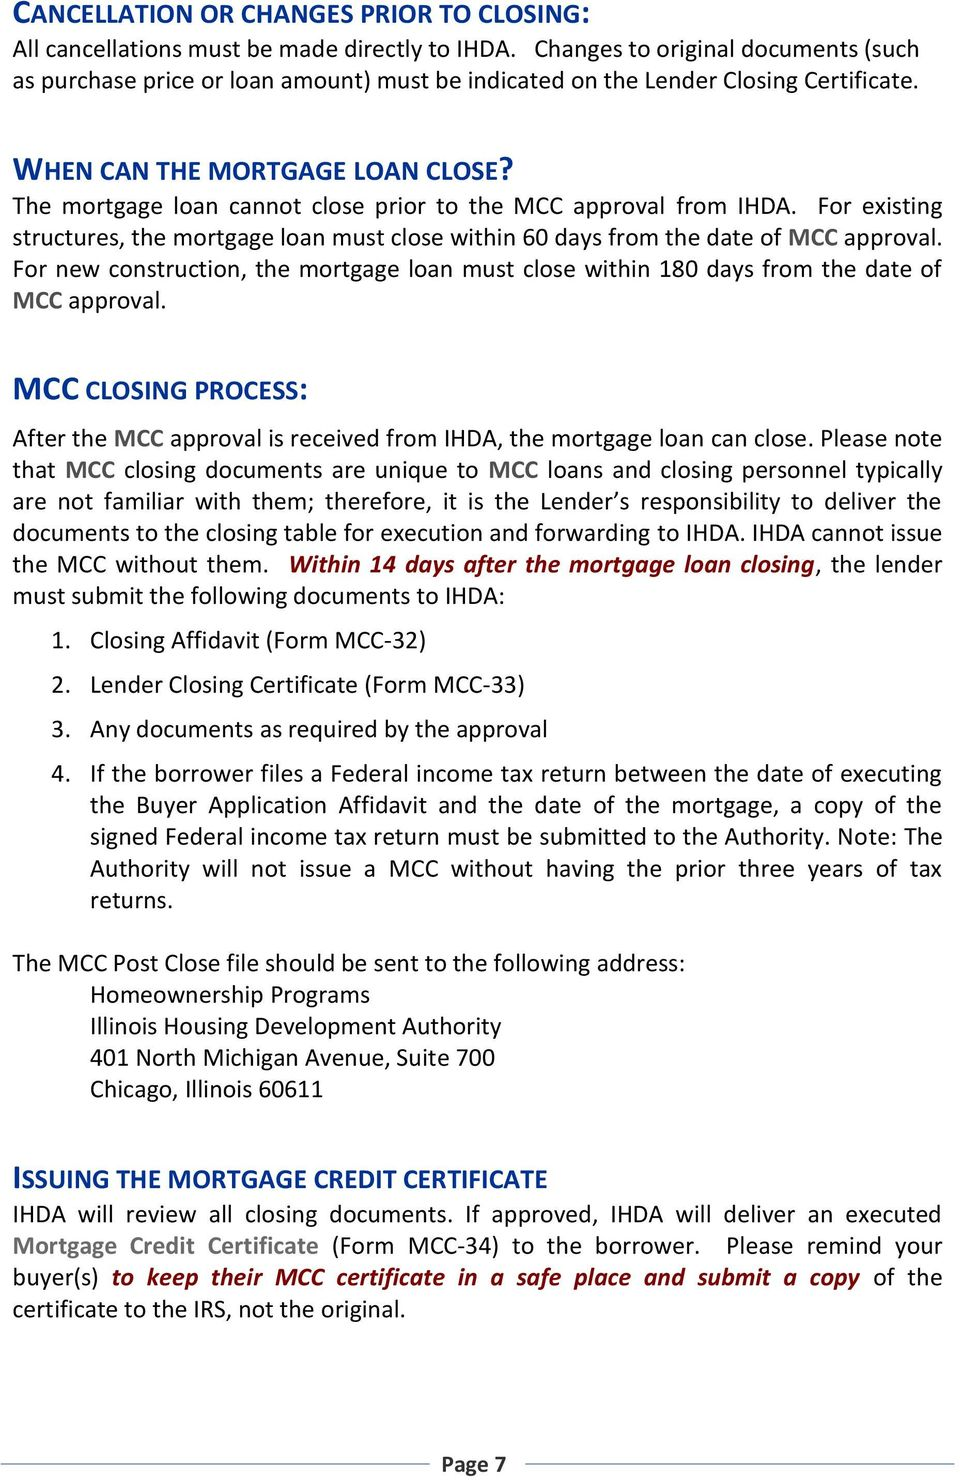 Mortgage Credit Certificate Mcc Procedural Guide Pdf